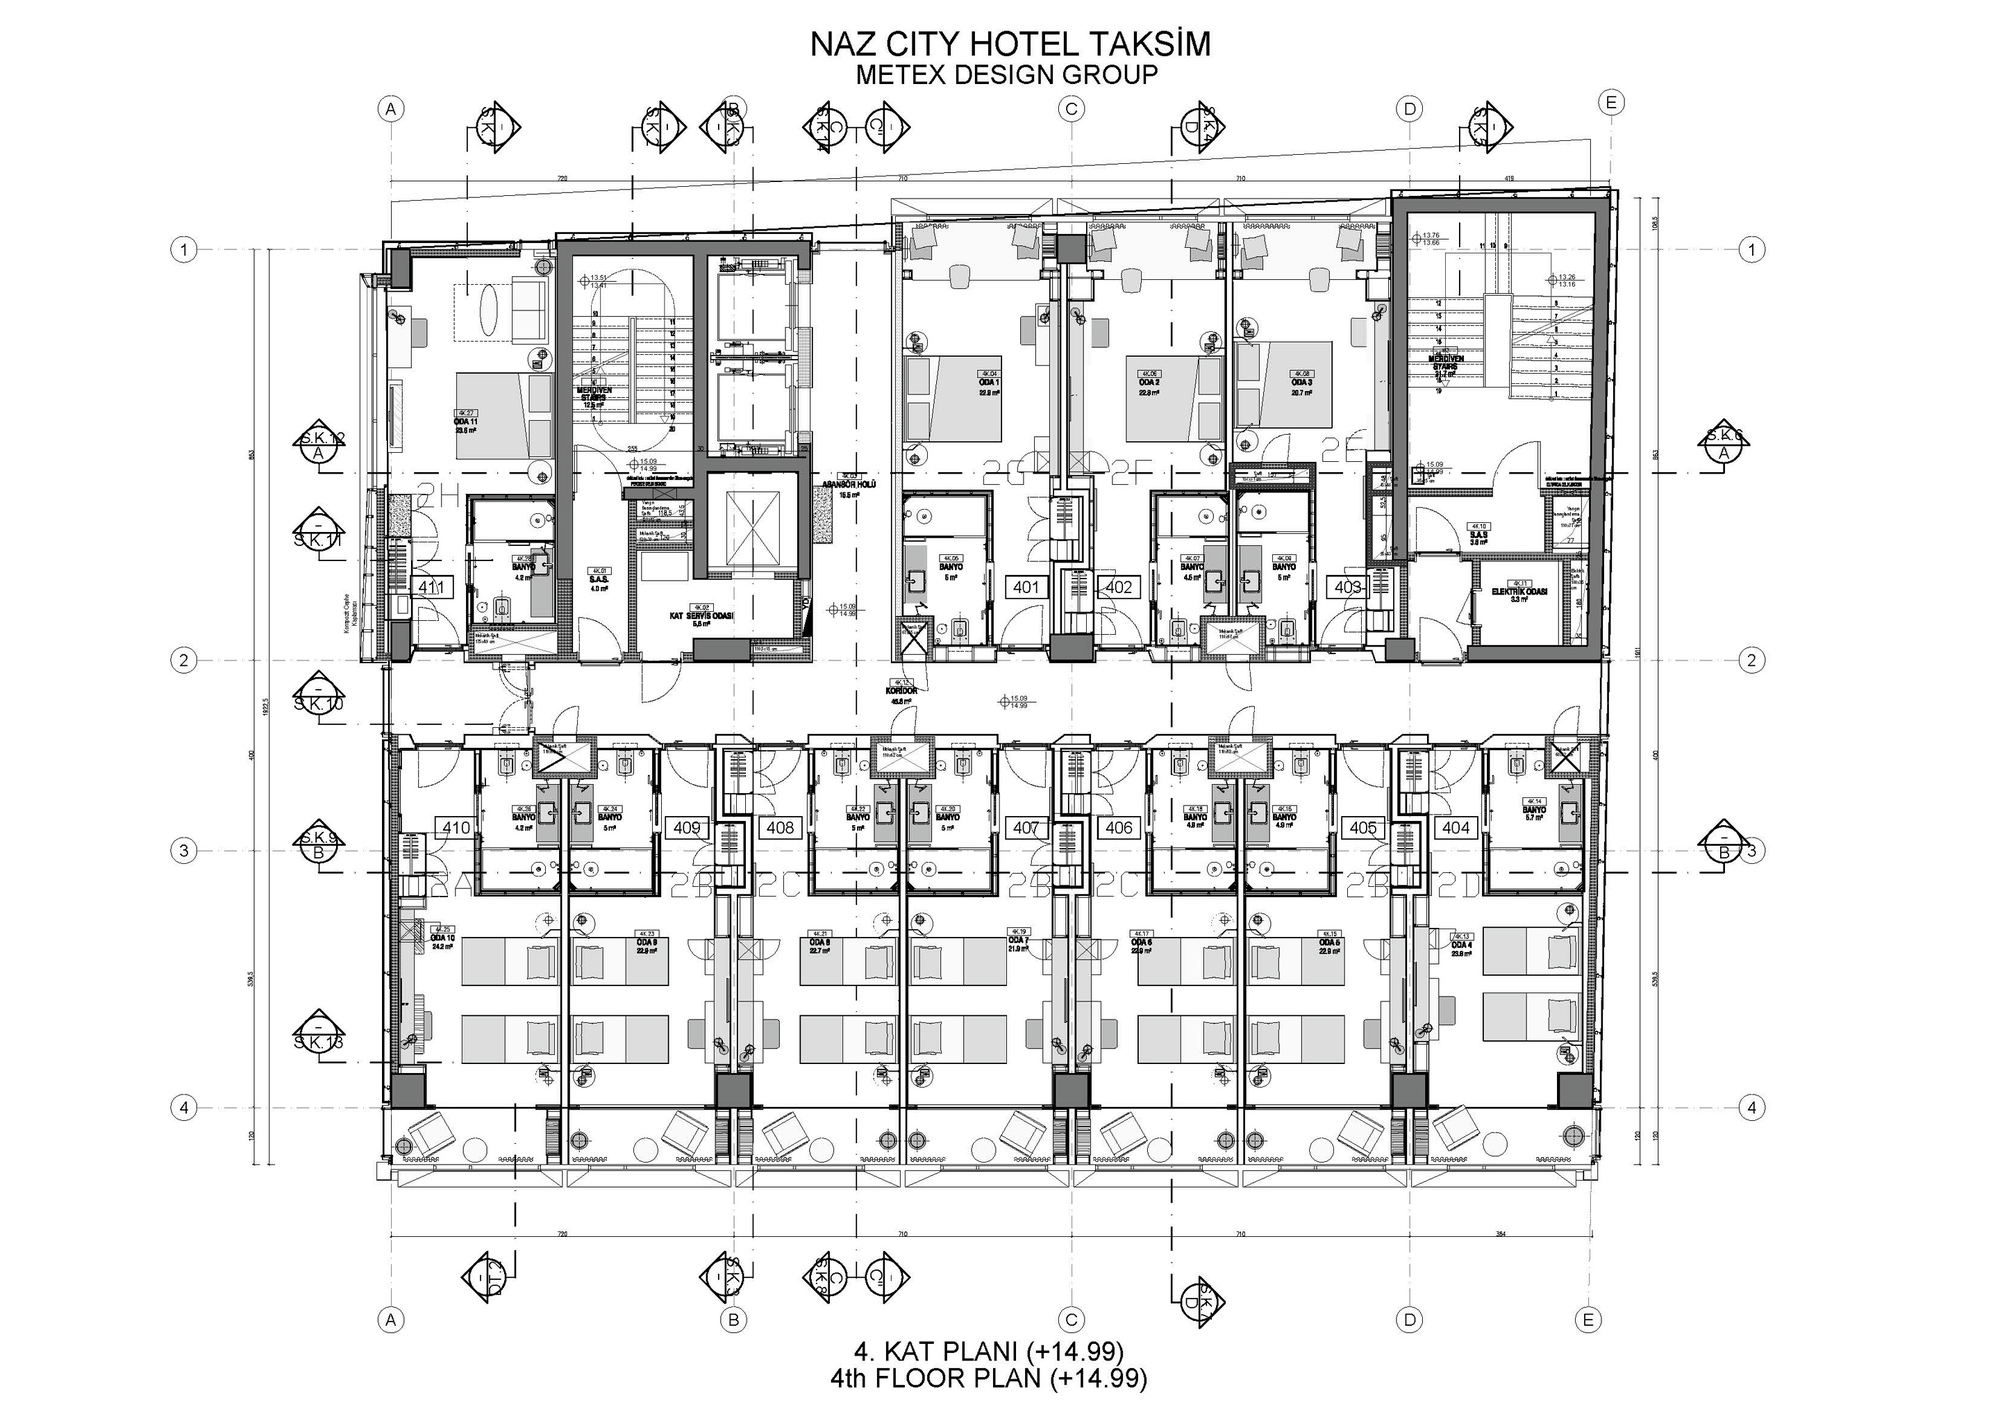 Gallery of naz city hotel taksim metex design group 30 for Design hotel group